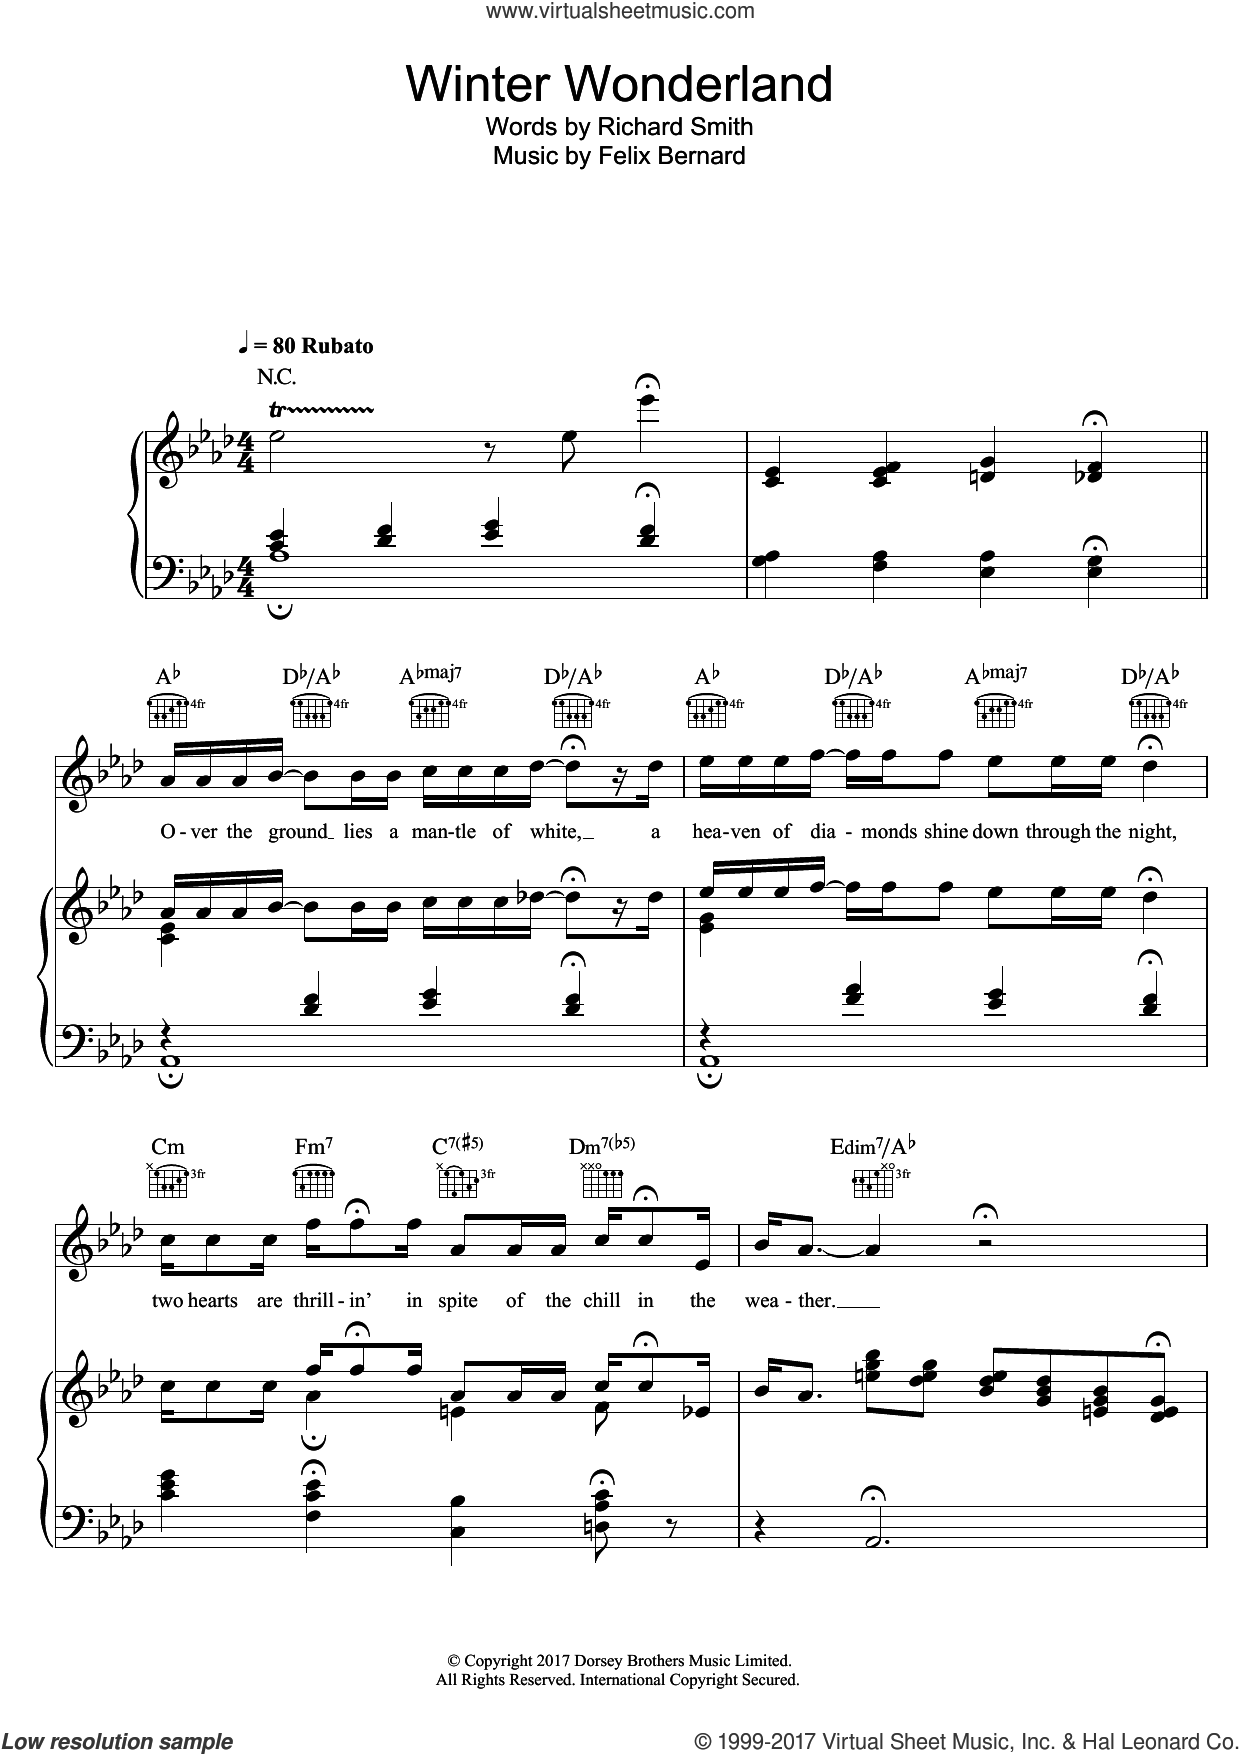 Winter Wonderland sheet music for voice, piano or guitar by Doris Day and Felix Bernard, intermediate skill level